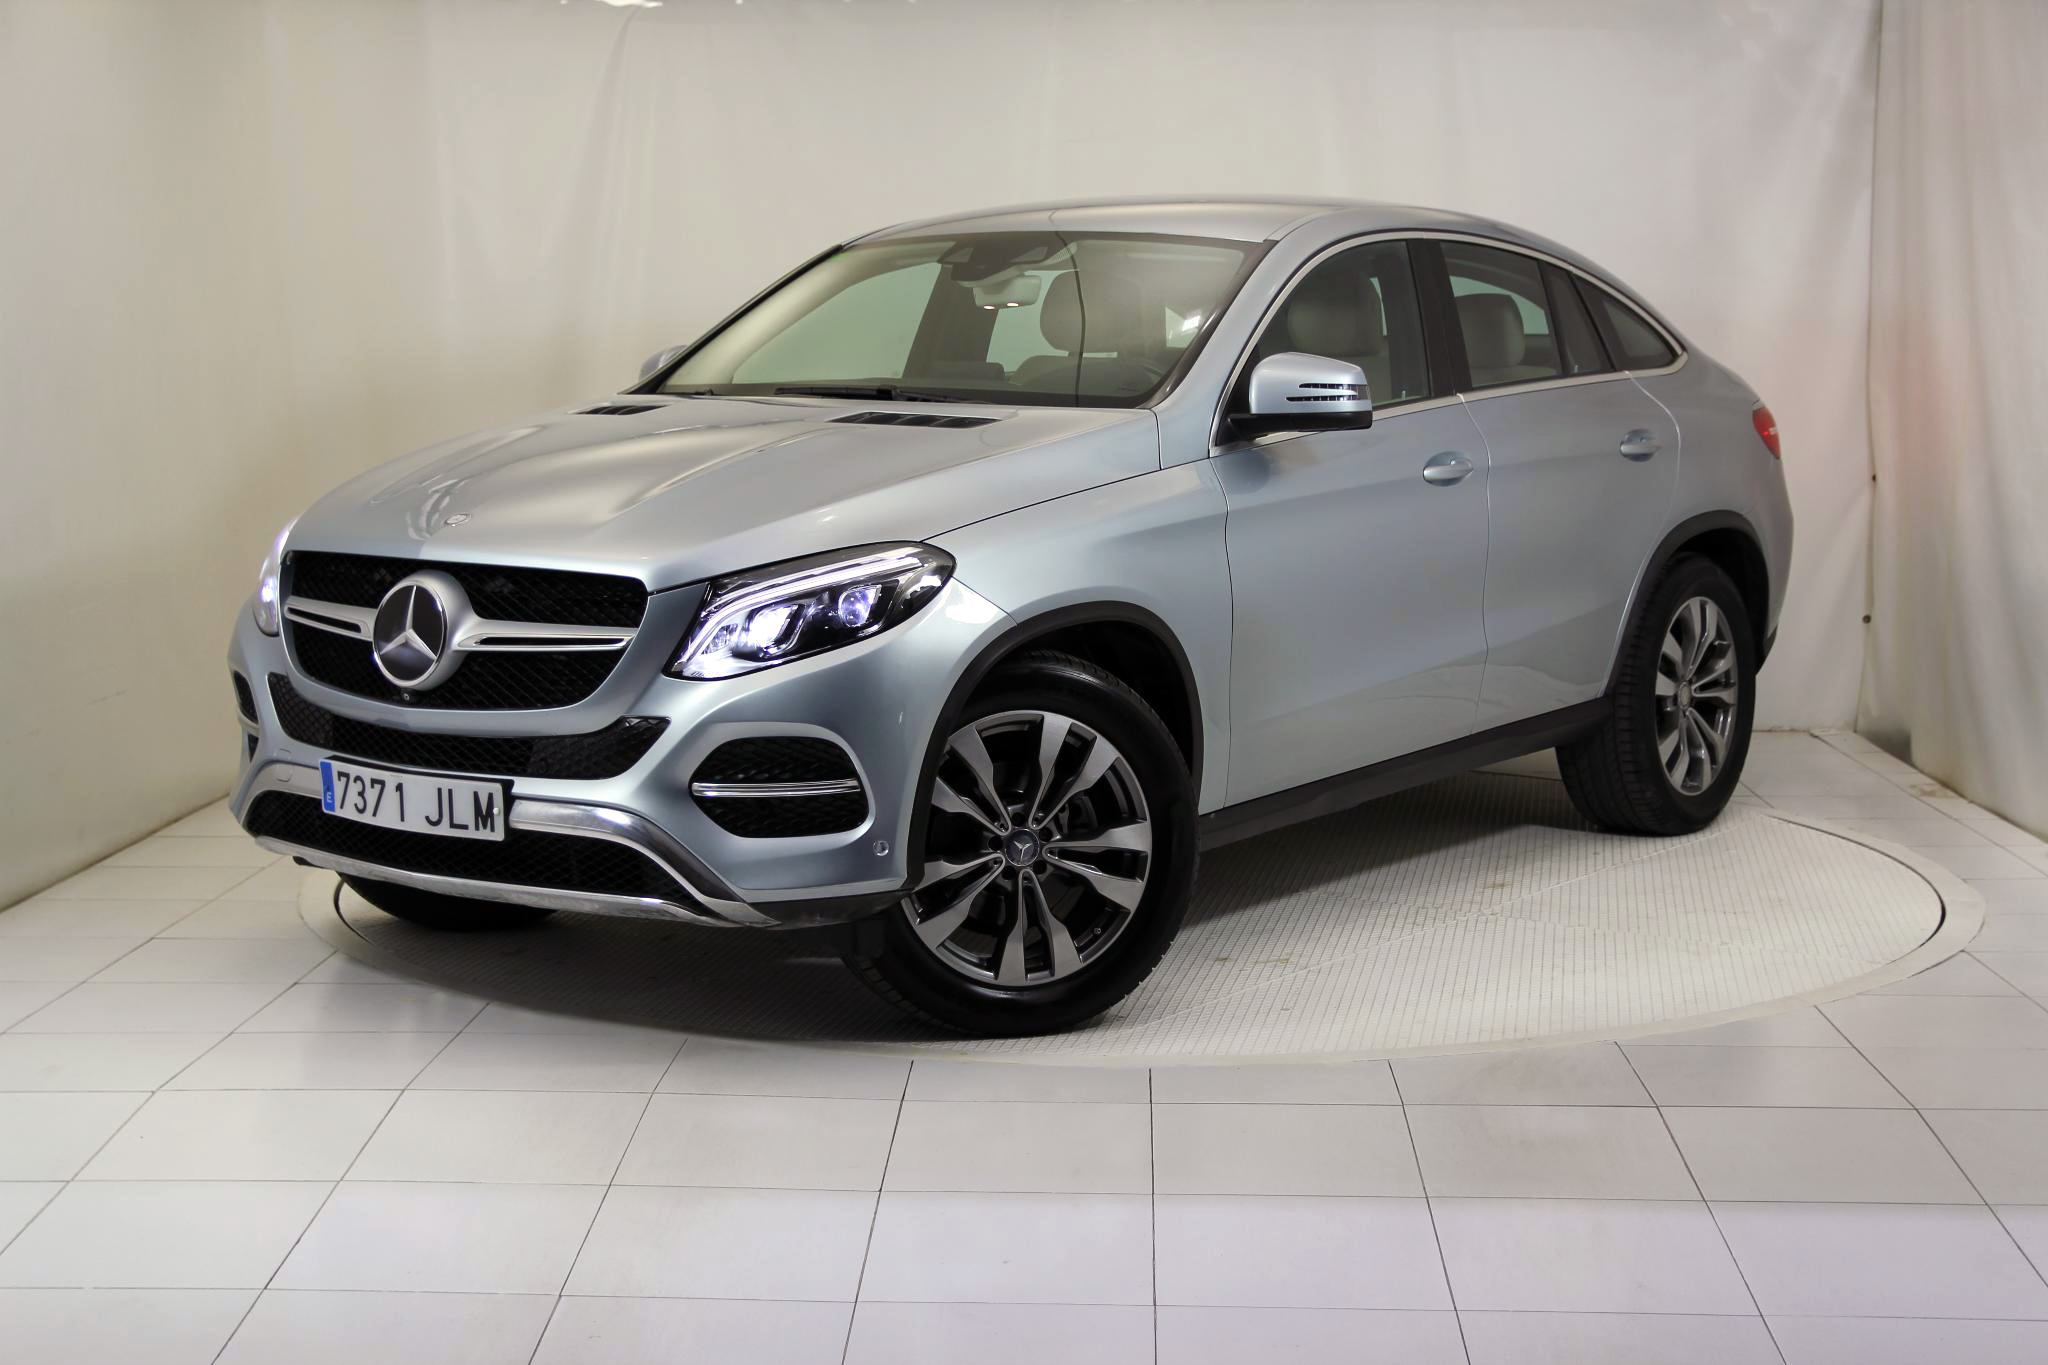 Mercedes-Benz Clase GLE GLE COUPE 350 D 4MATIC imagen 2